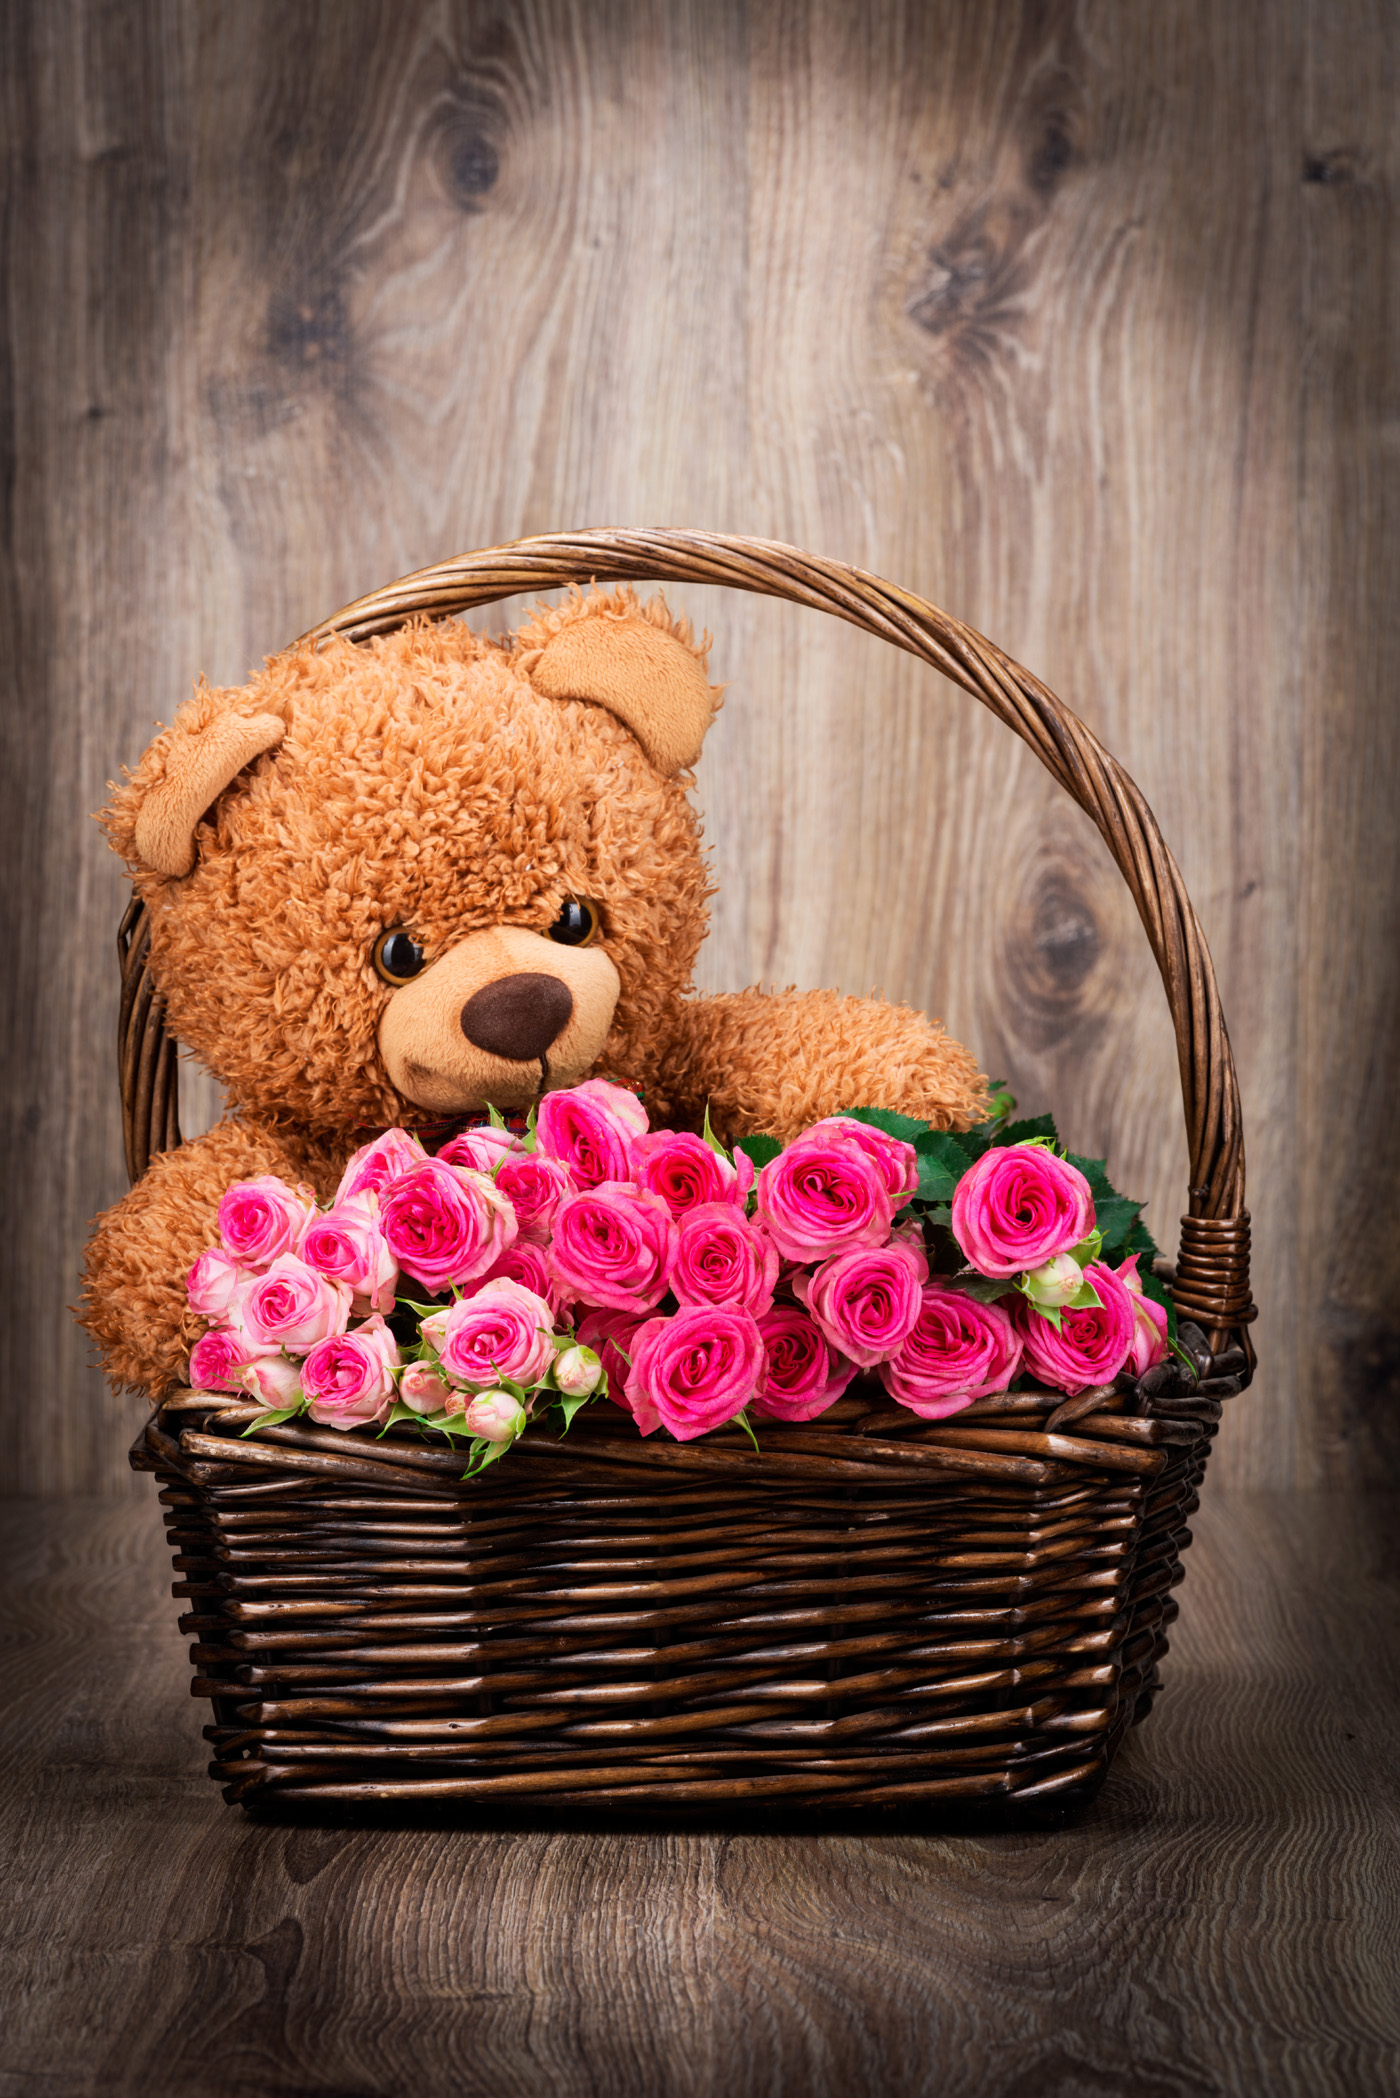 Teddy bear and flowers in baskets 51430